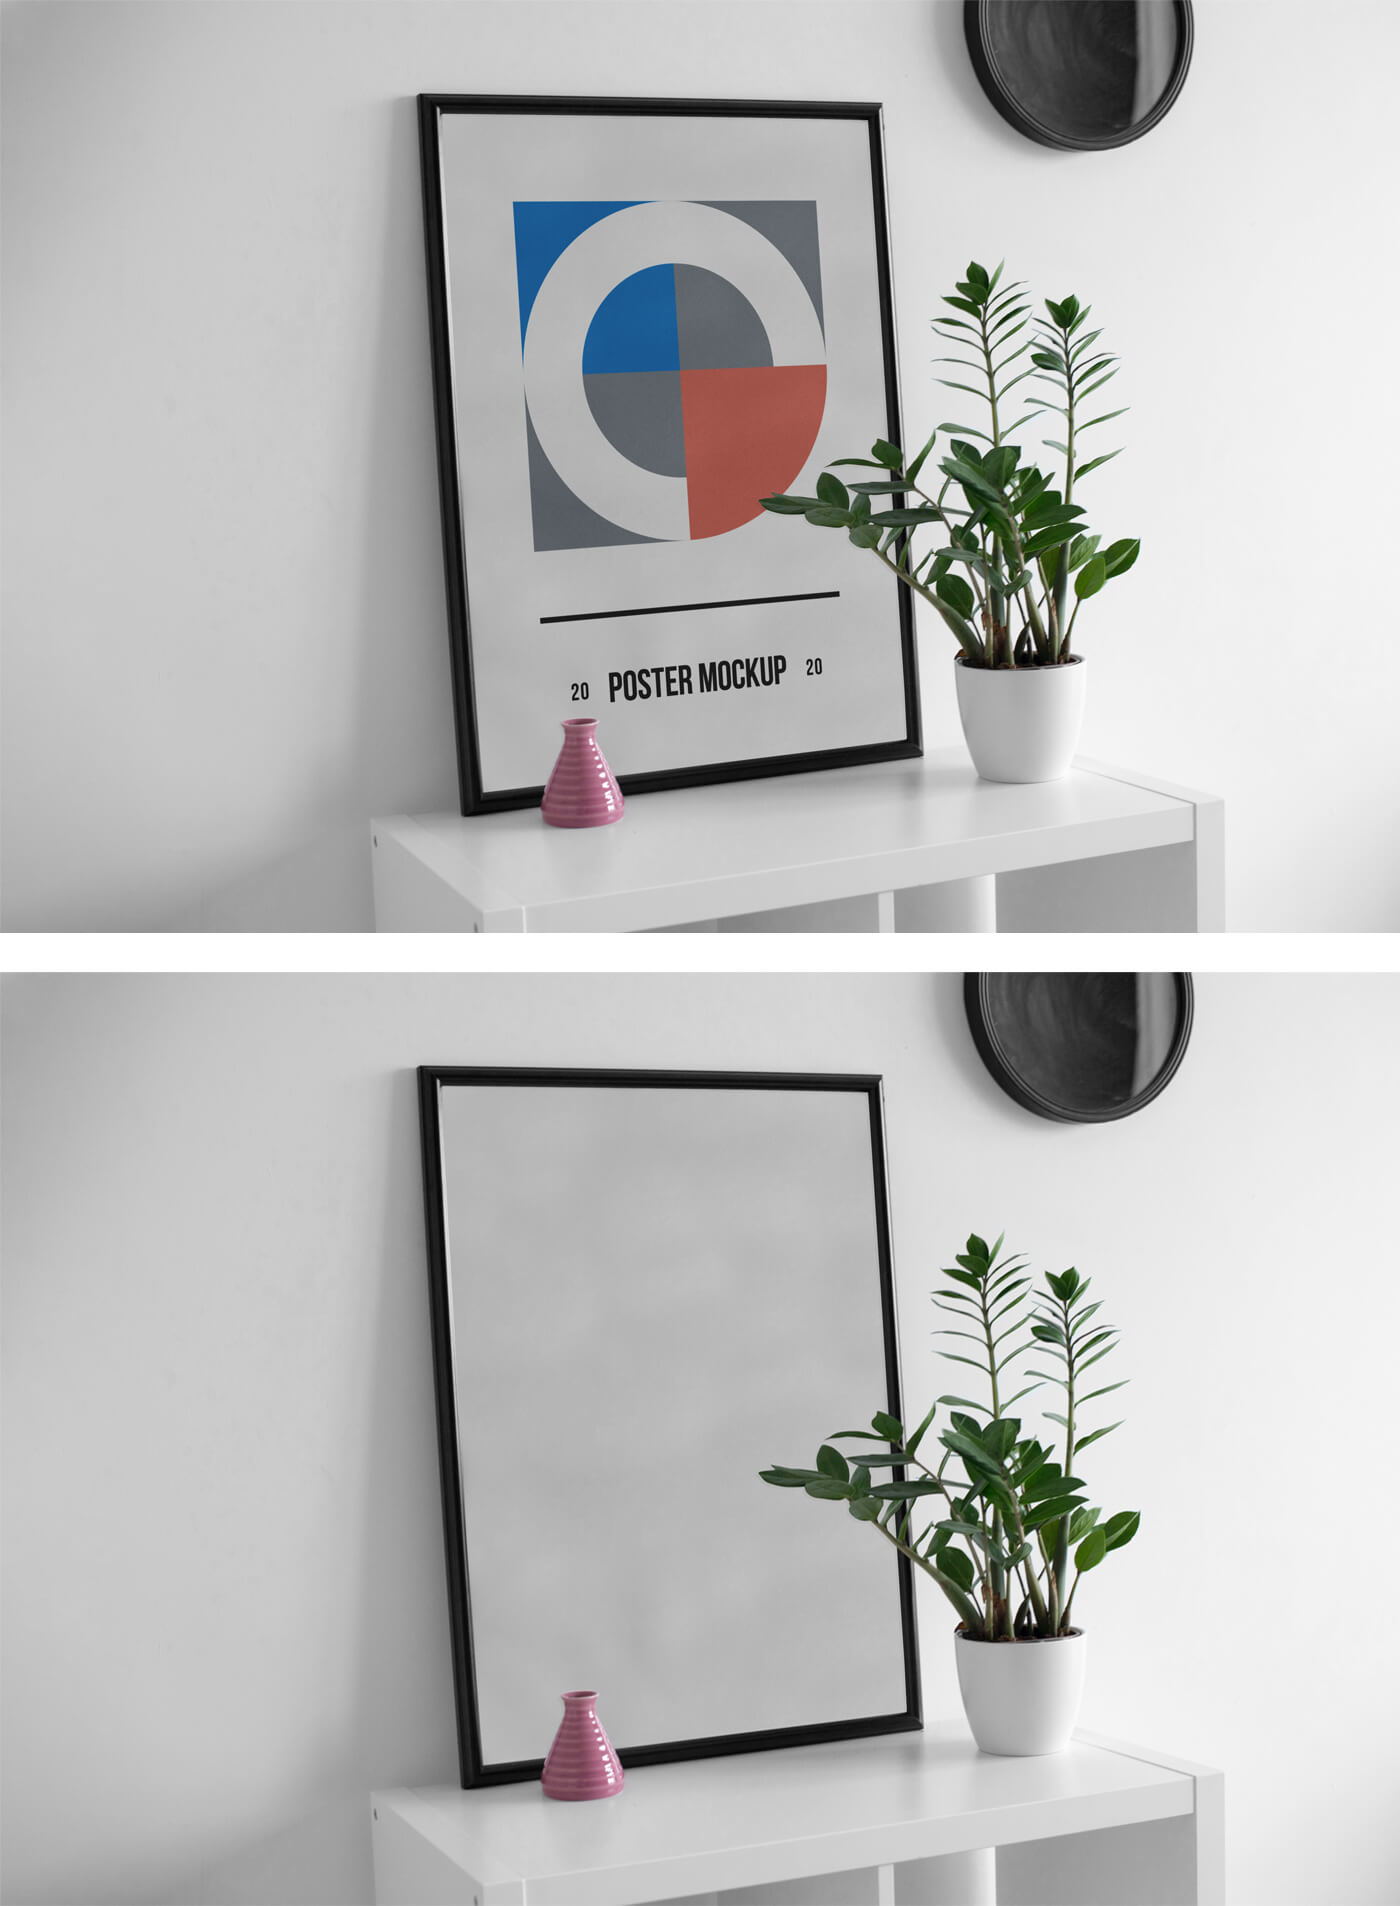 Free Side view Poster on Desk  Mockup PSD Template